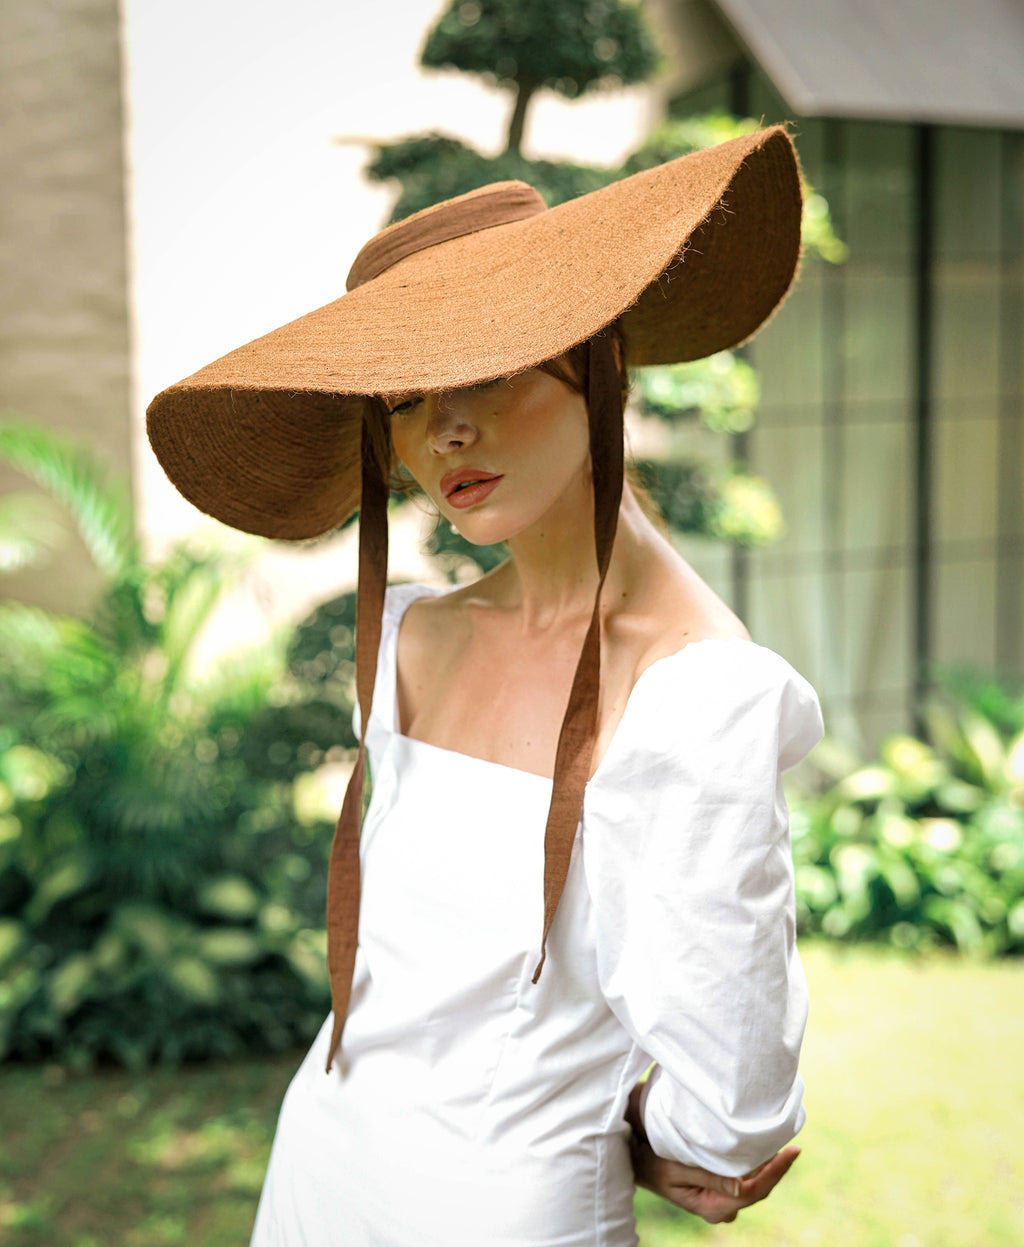 Lola Wide Brim Jute Straw Hat, in Havana Brown